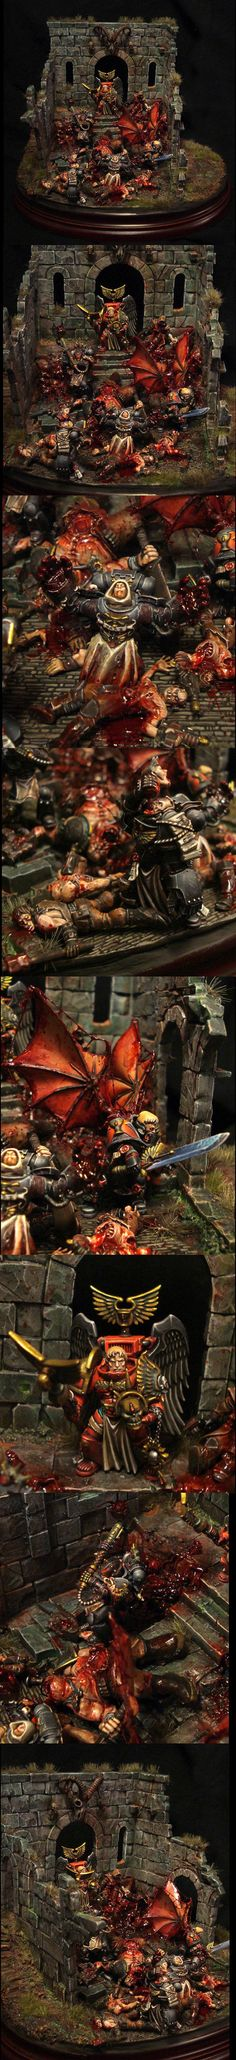 Blood, Blood Angels, Chaos, Death Company, Space Marines, Vampire, Violence